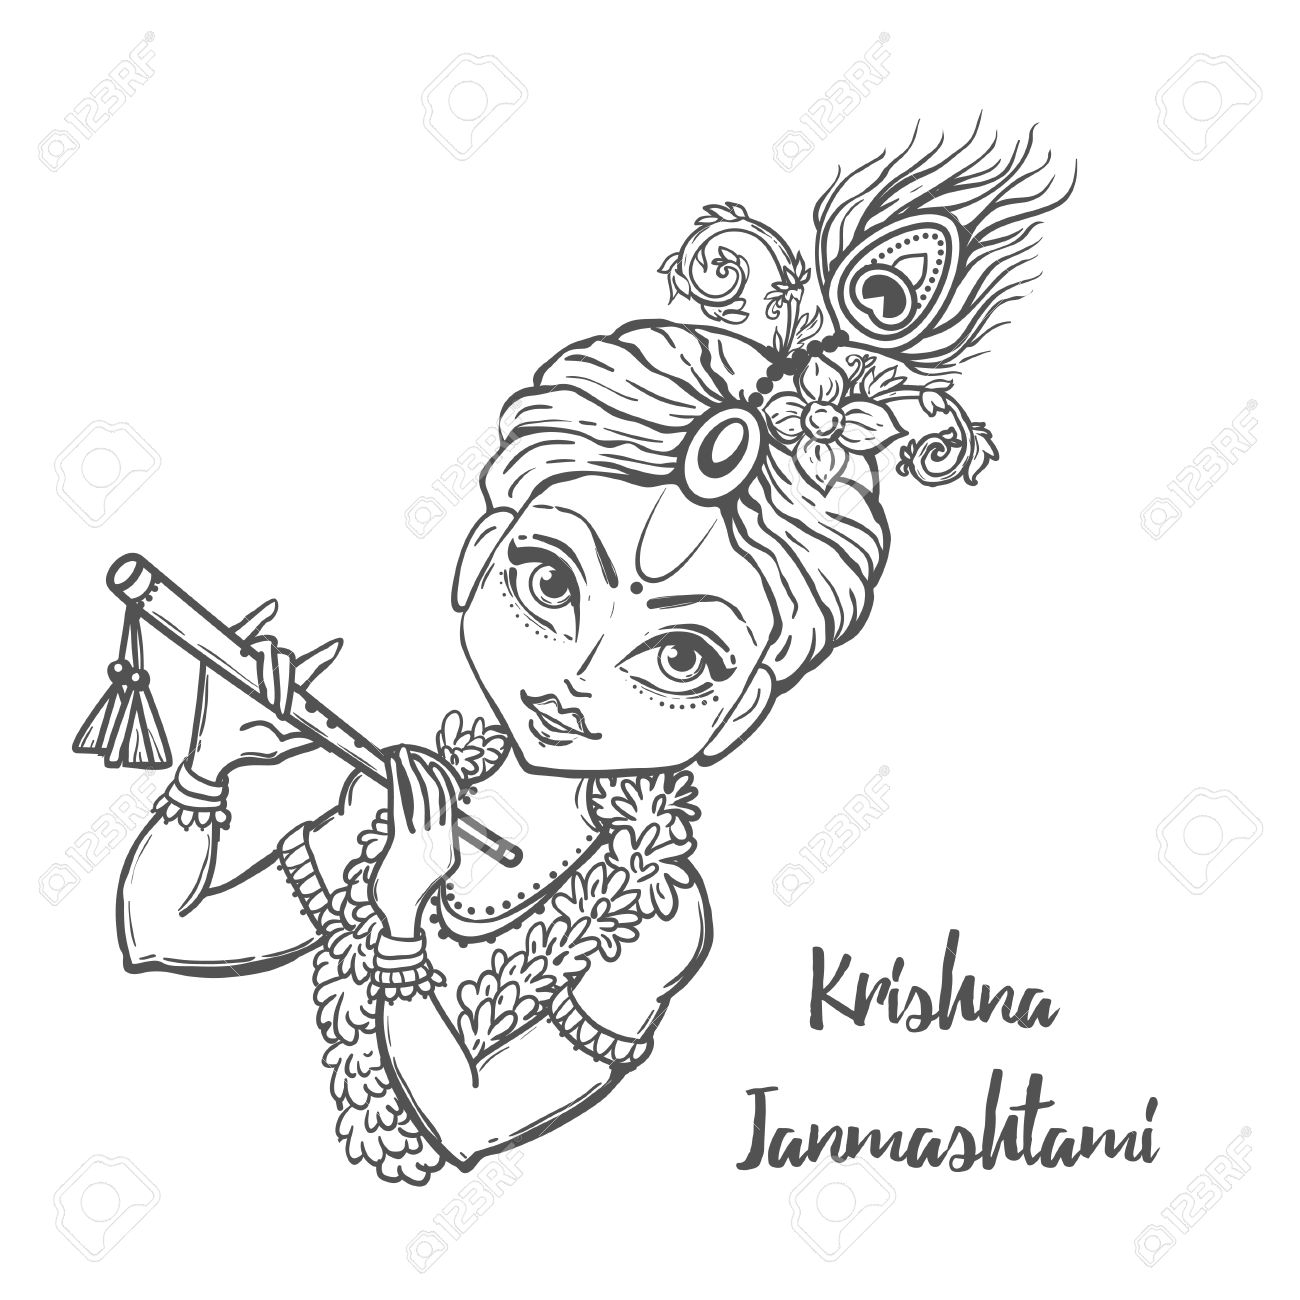 1300x1300 Shri Krishna Cartoon Drawings Sketches Bhagavat Chintan Das